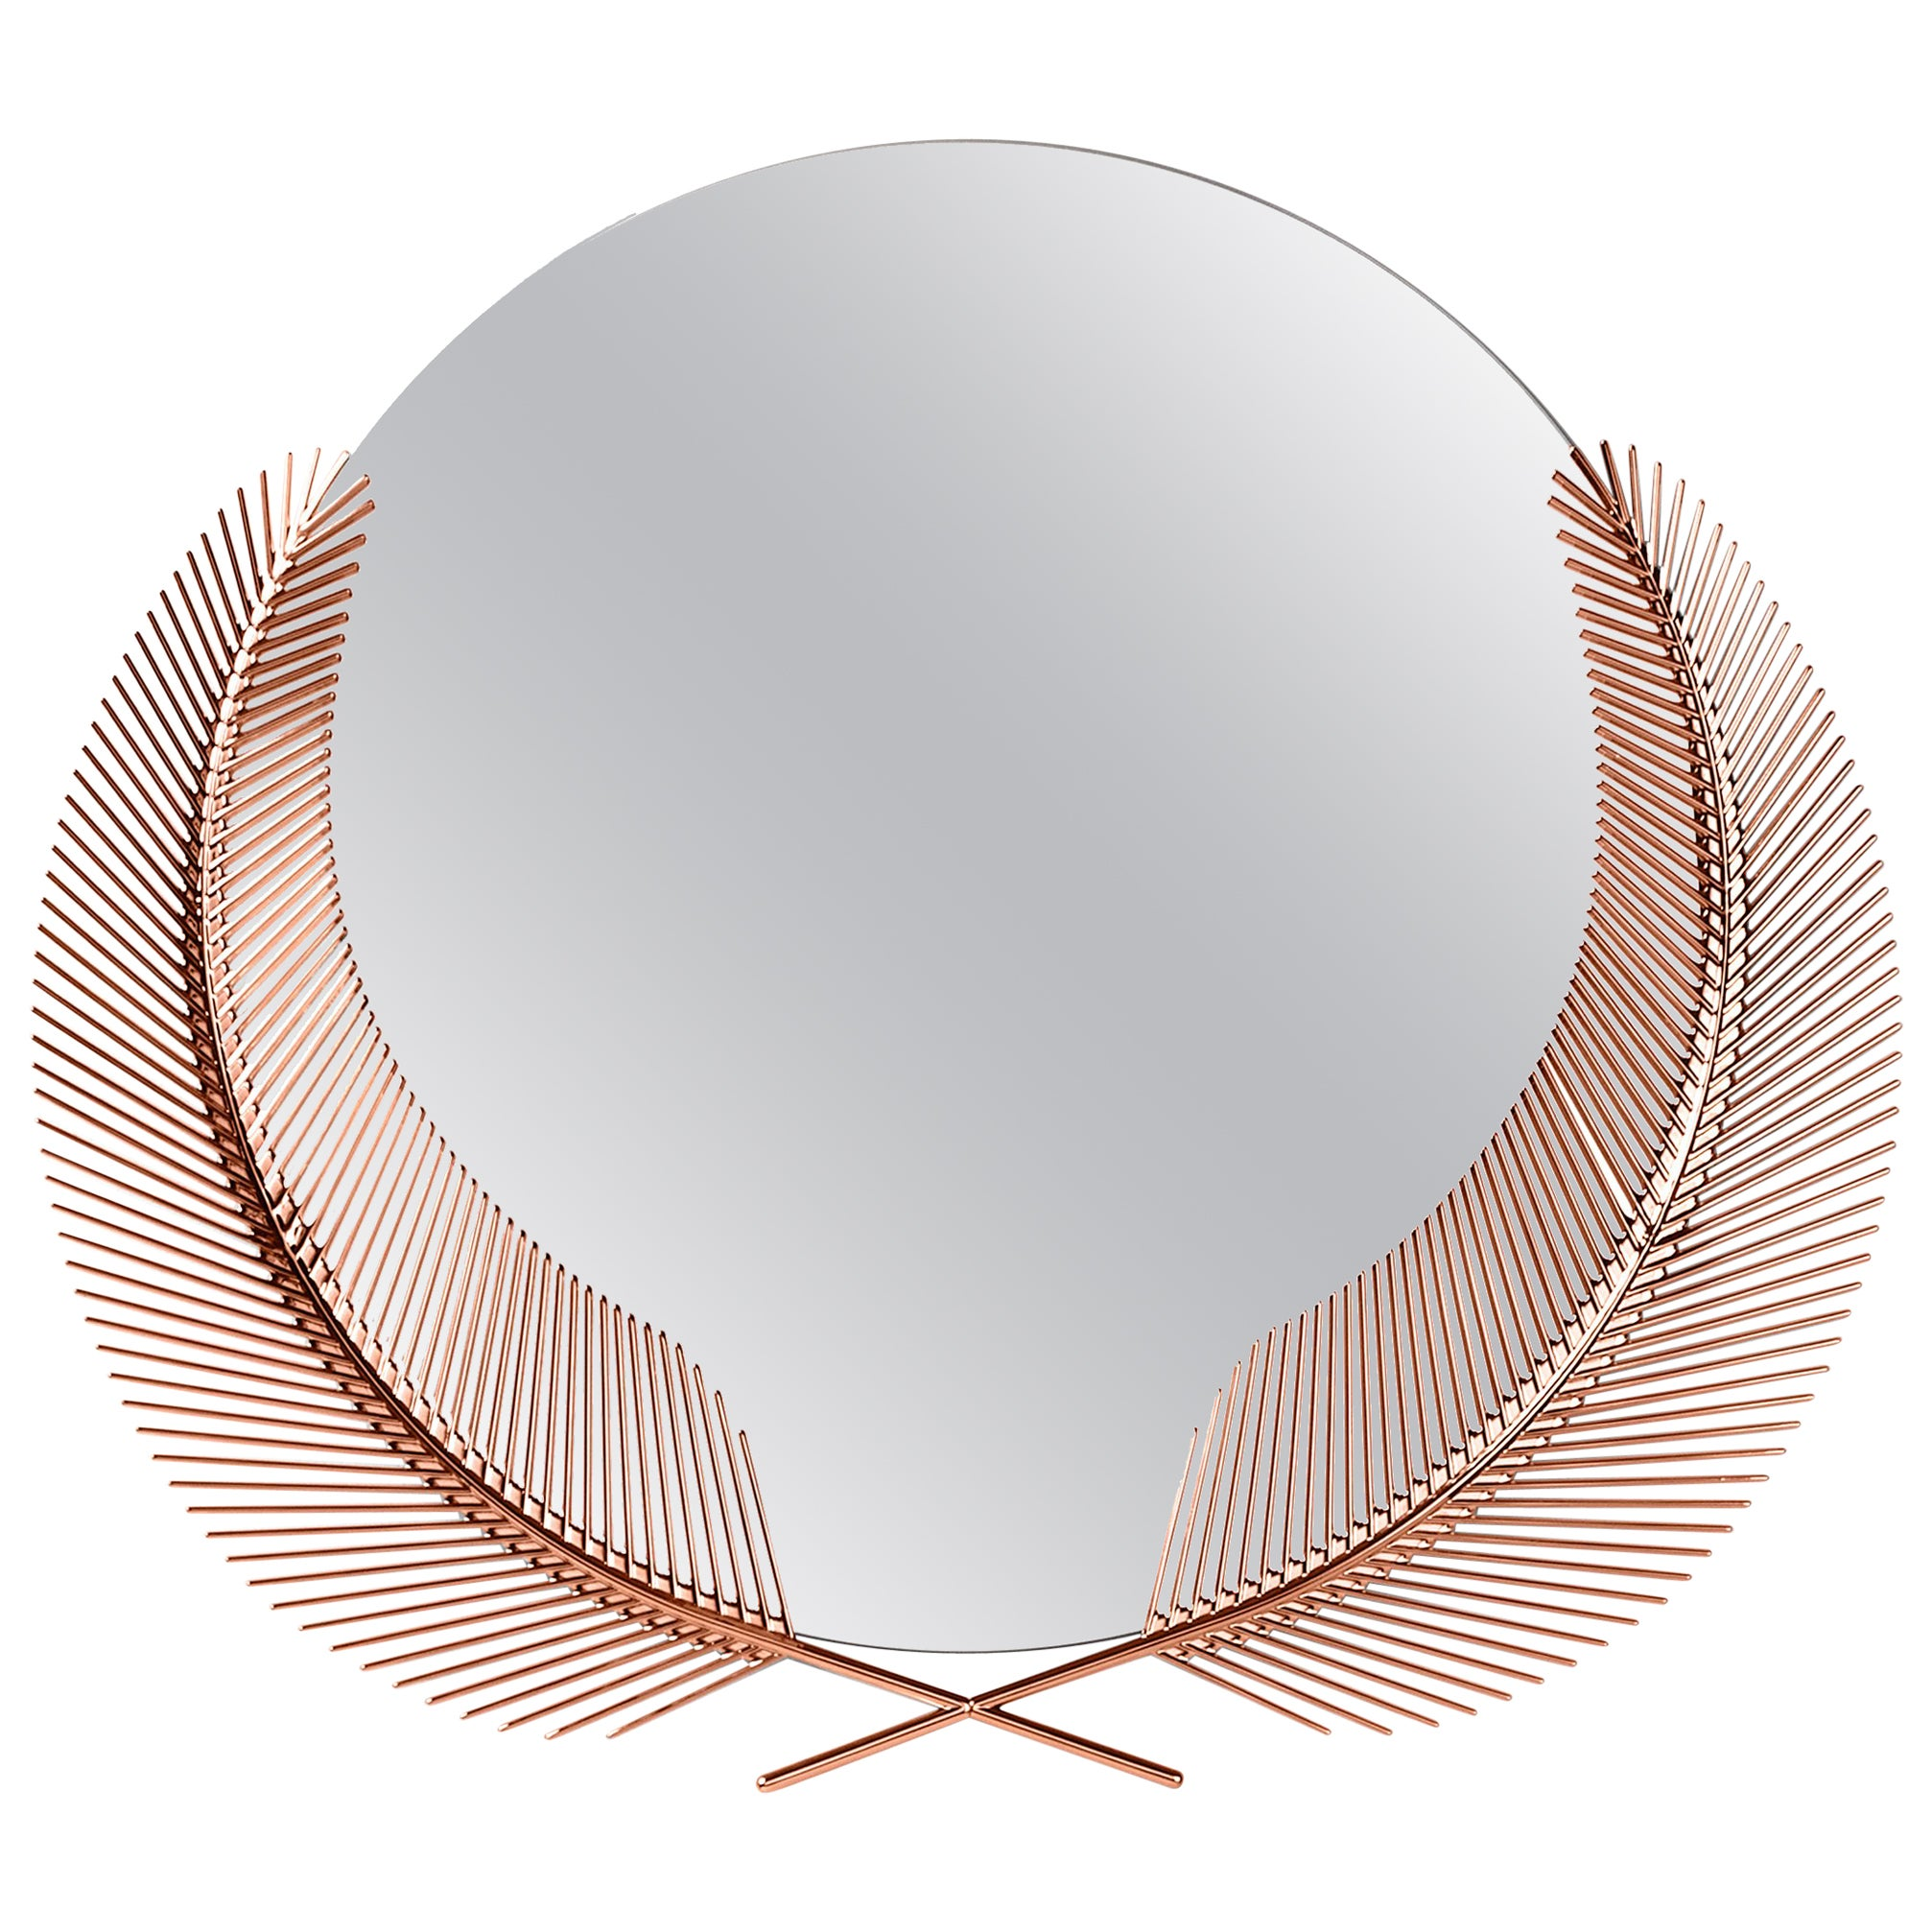 Ghidini 1961 Sunset Small Mirror in Copper-Plated Brass by Nika Zupanc